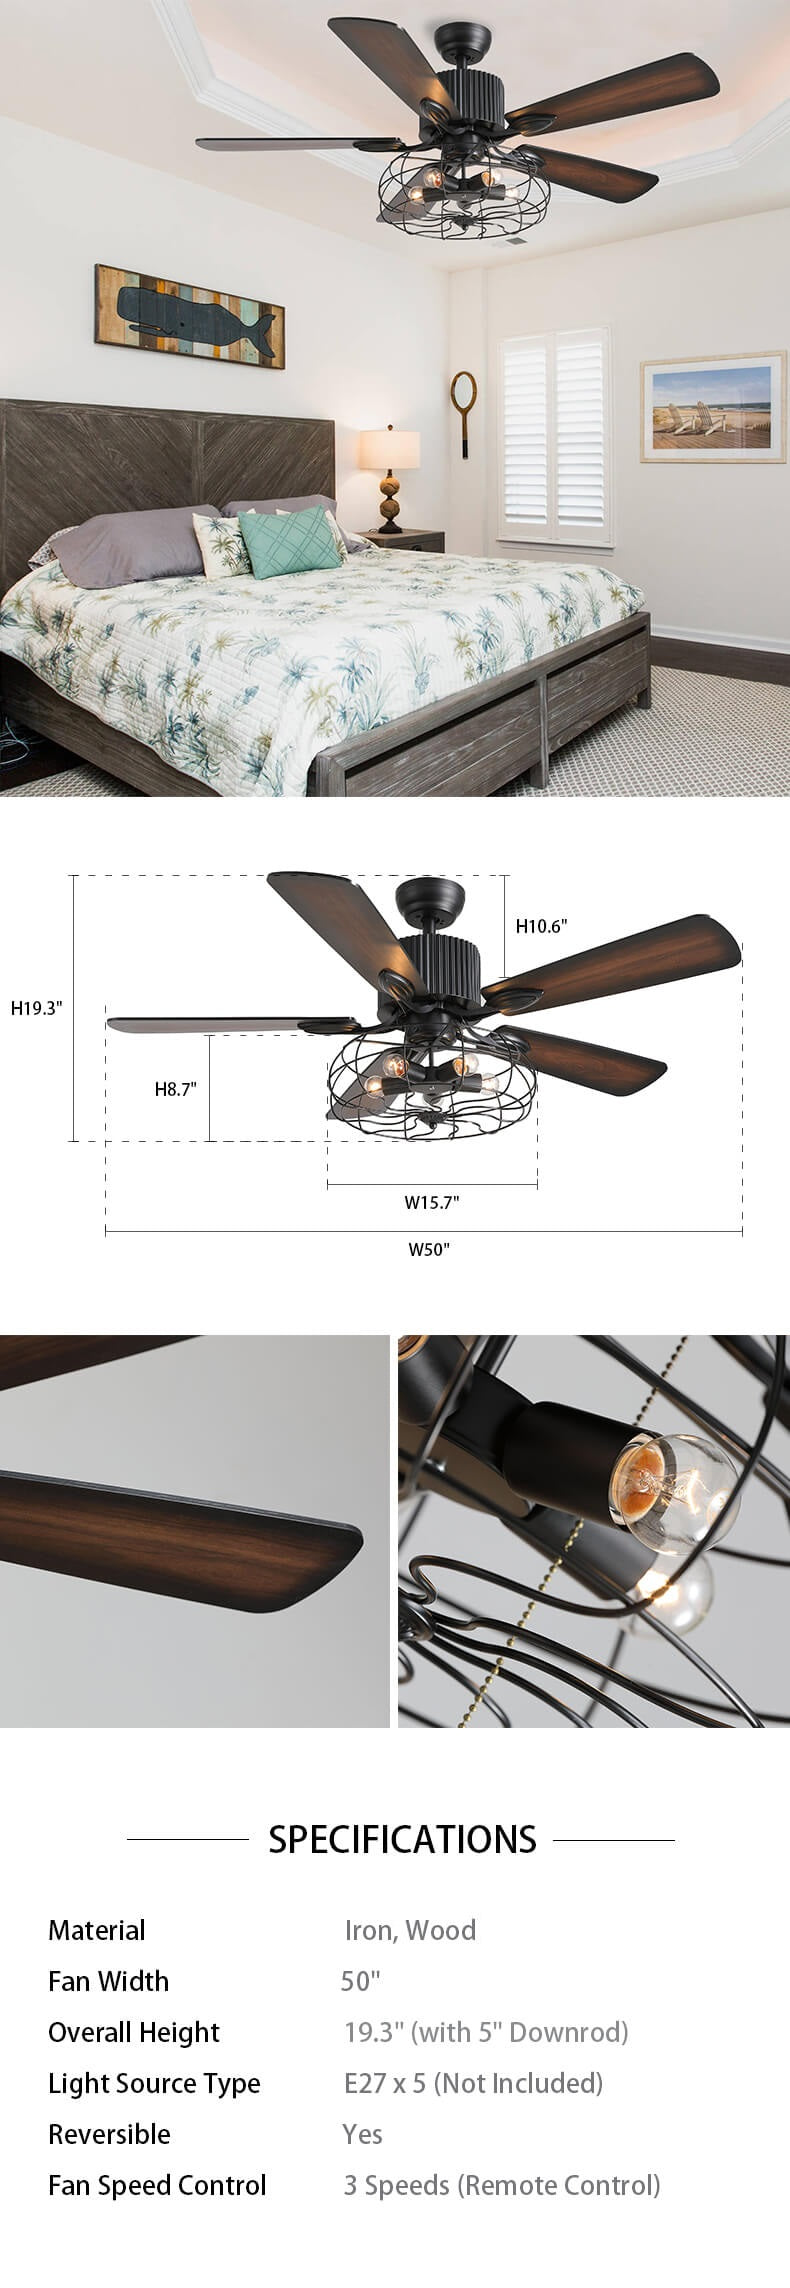 Industrial Chandelier Ceiling Fan with Reversible Blades Dimension